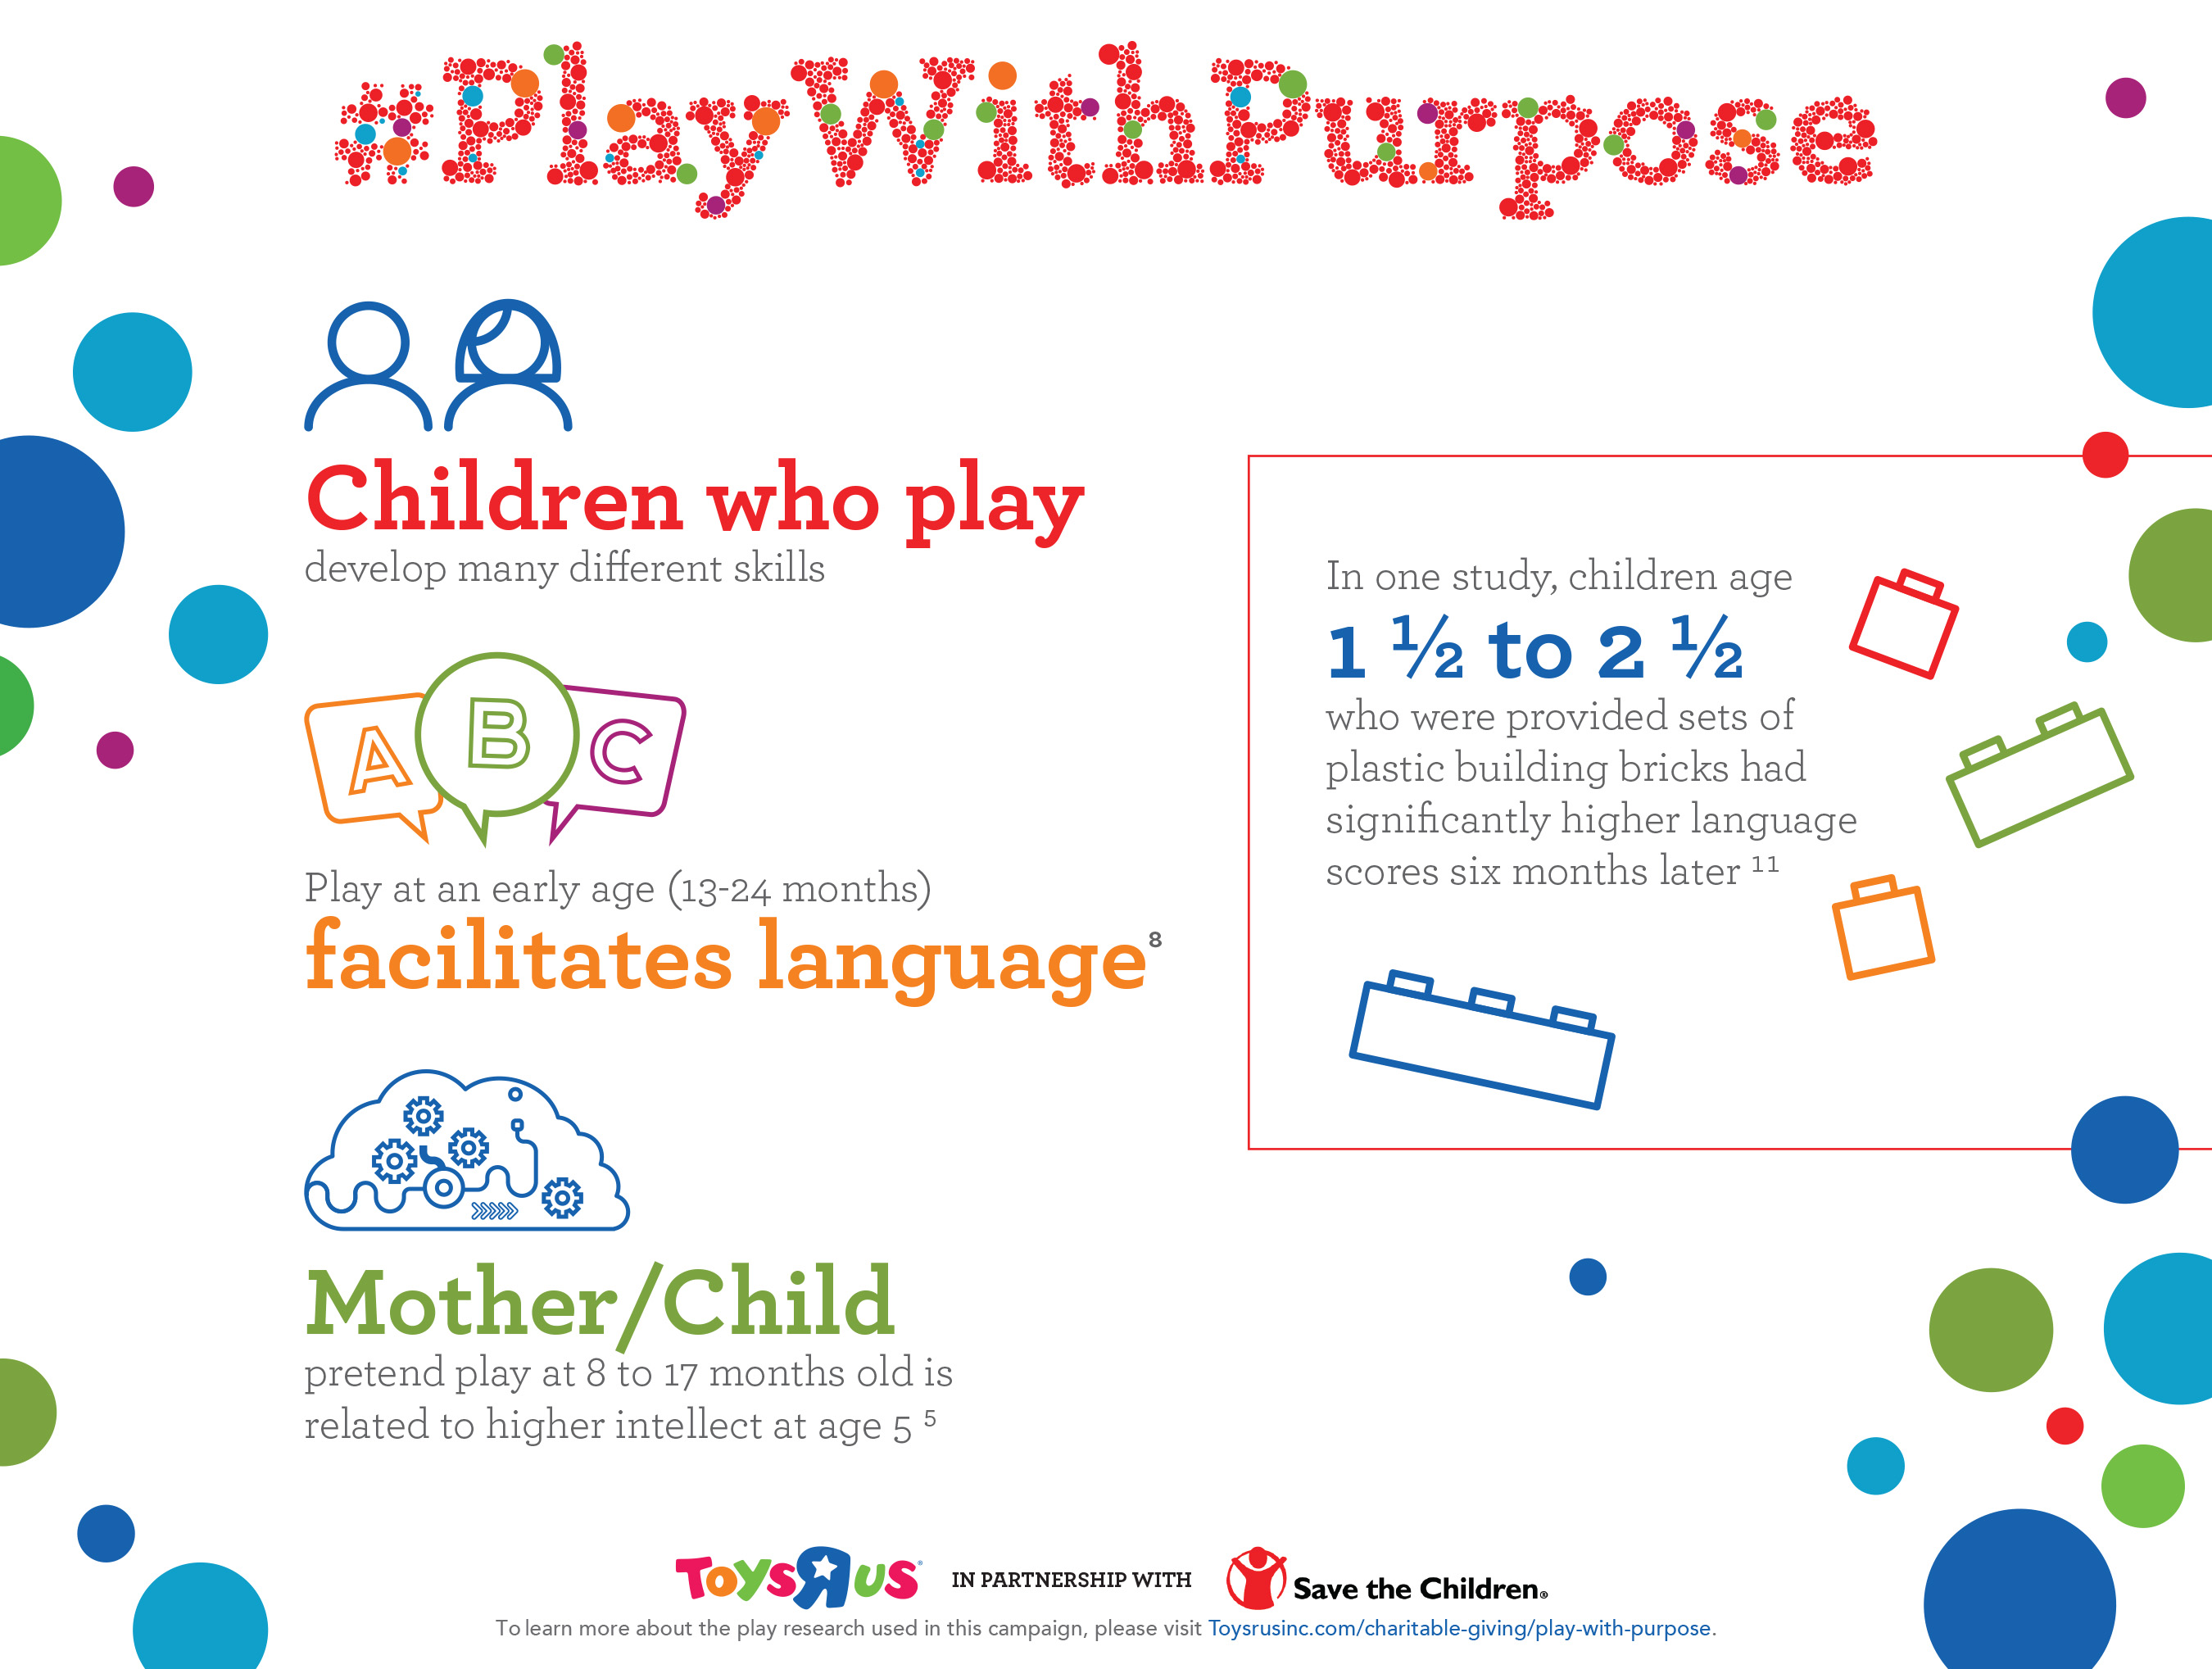 Visit https://www.toysrusinc.com/charitable-giving/play-with-purpose/works-cited for citations.